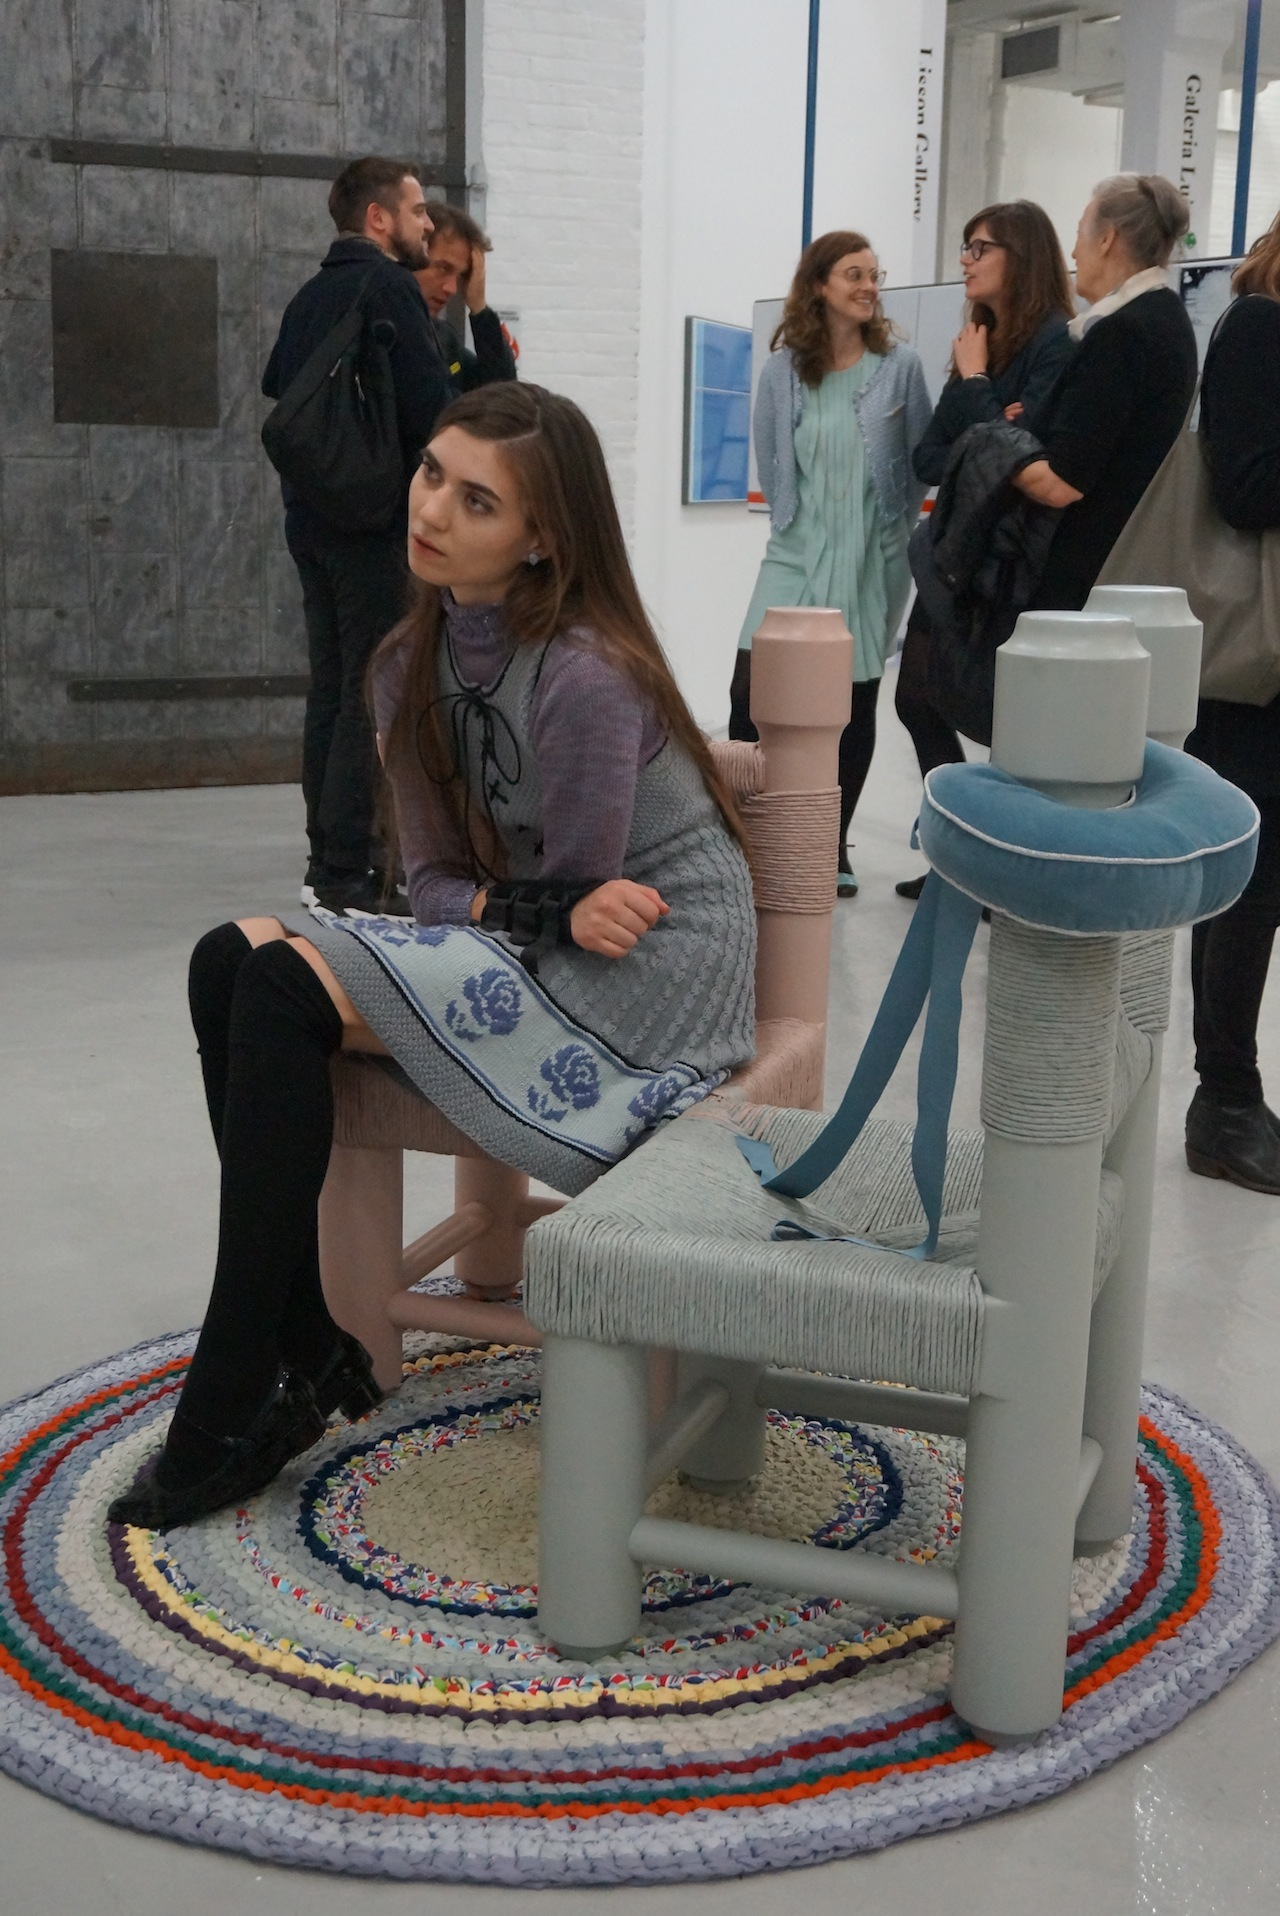 A woman rests on a chair by Bunny Rogers, at Société.